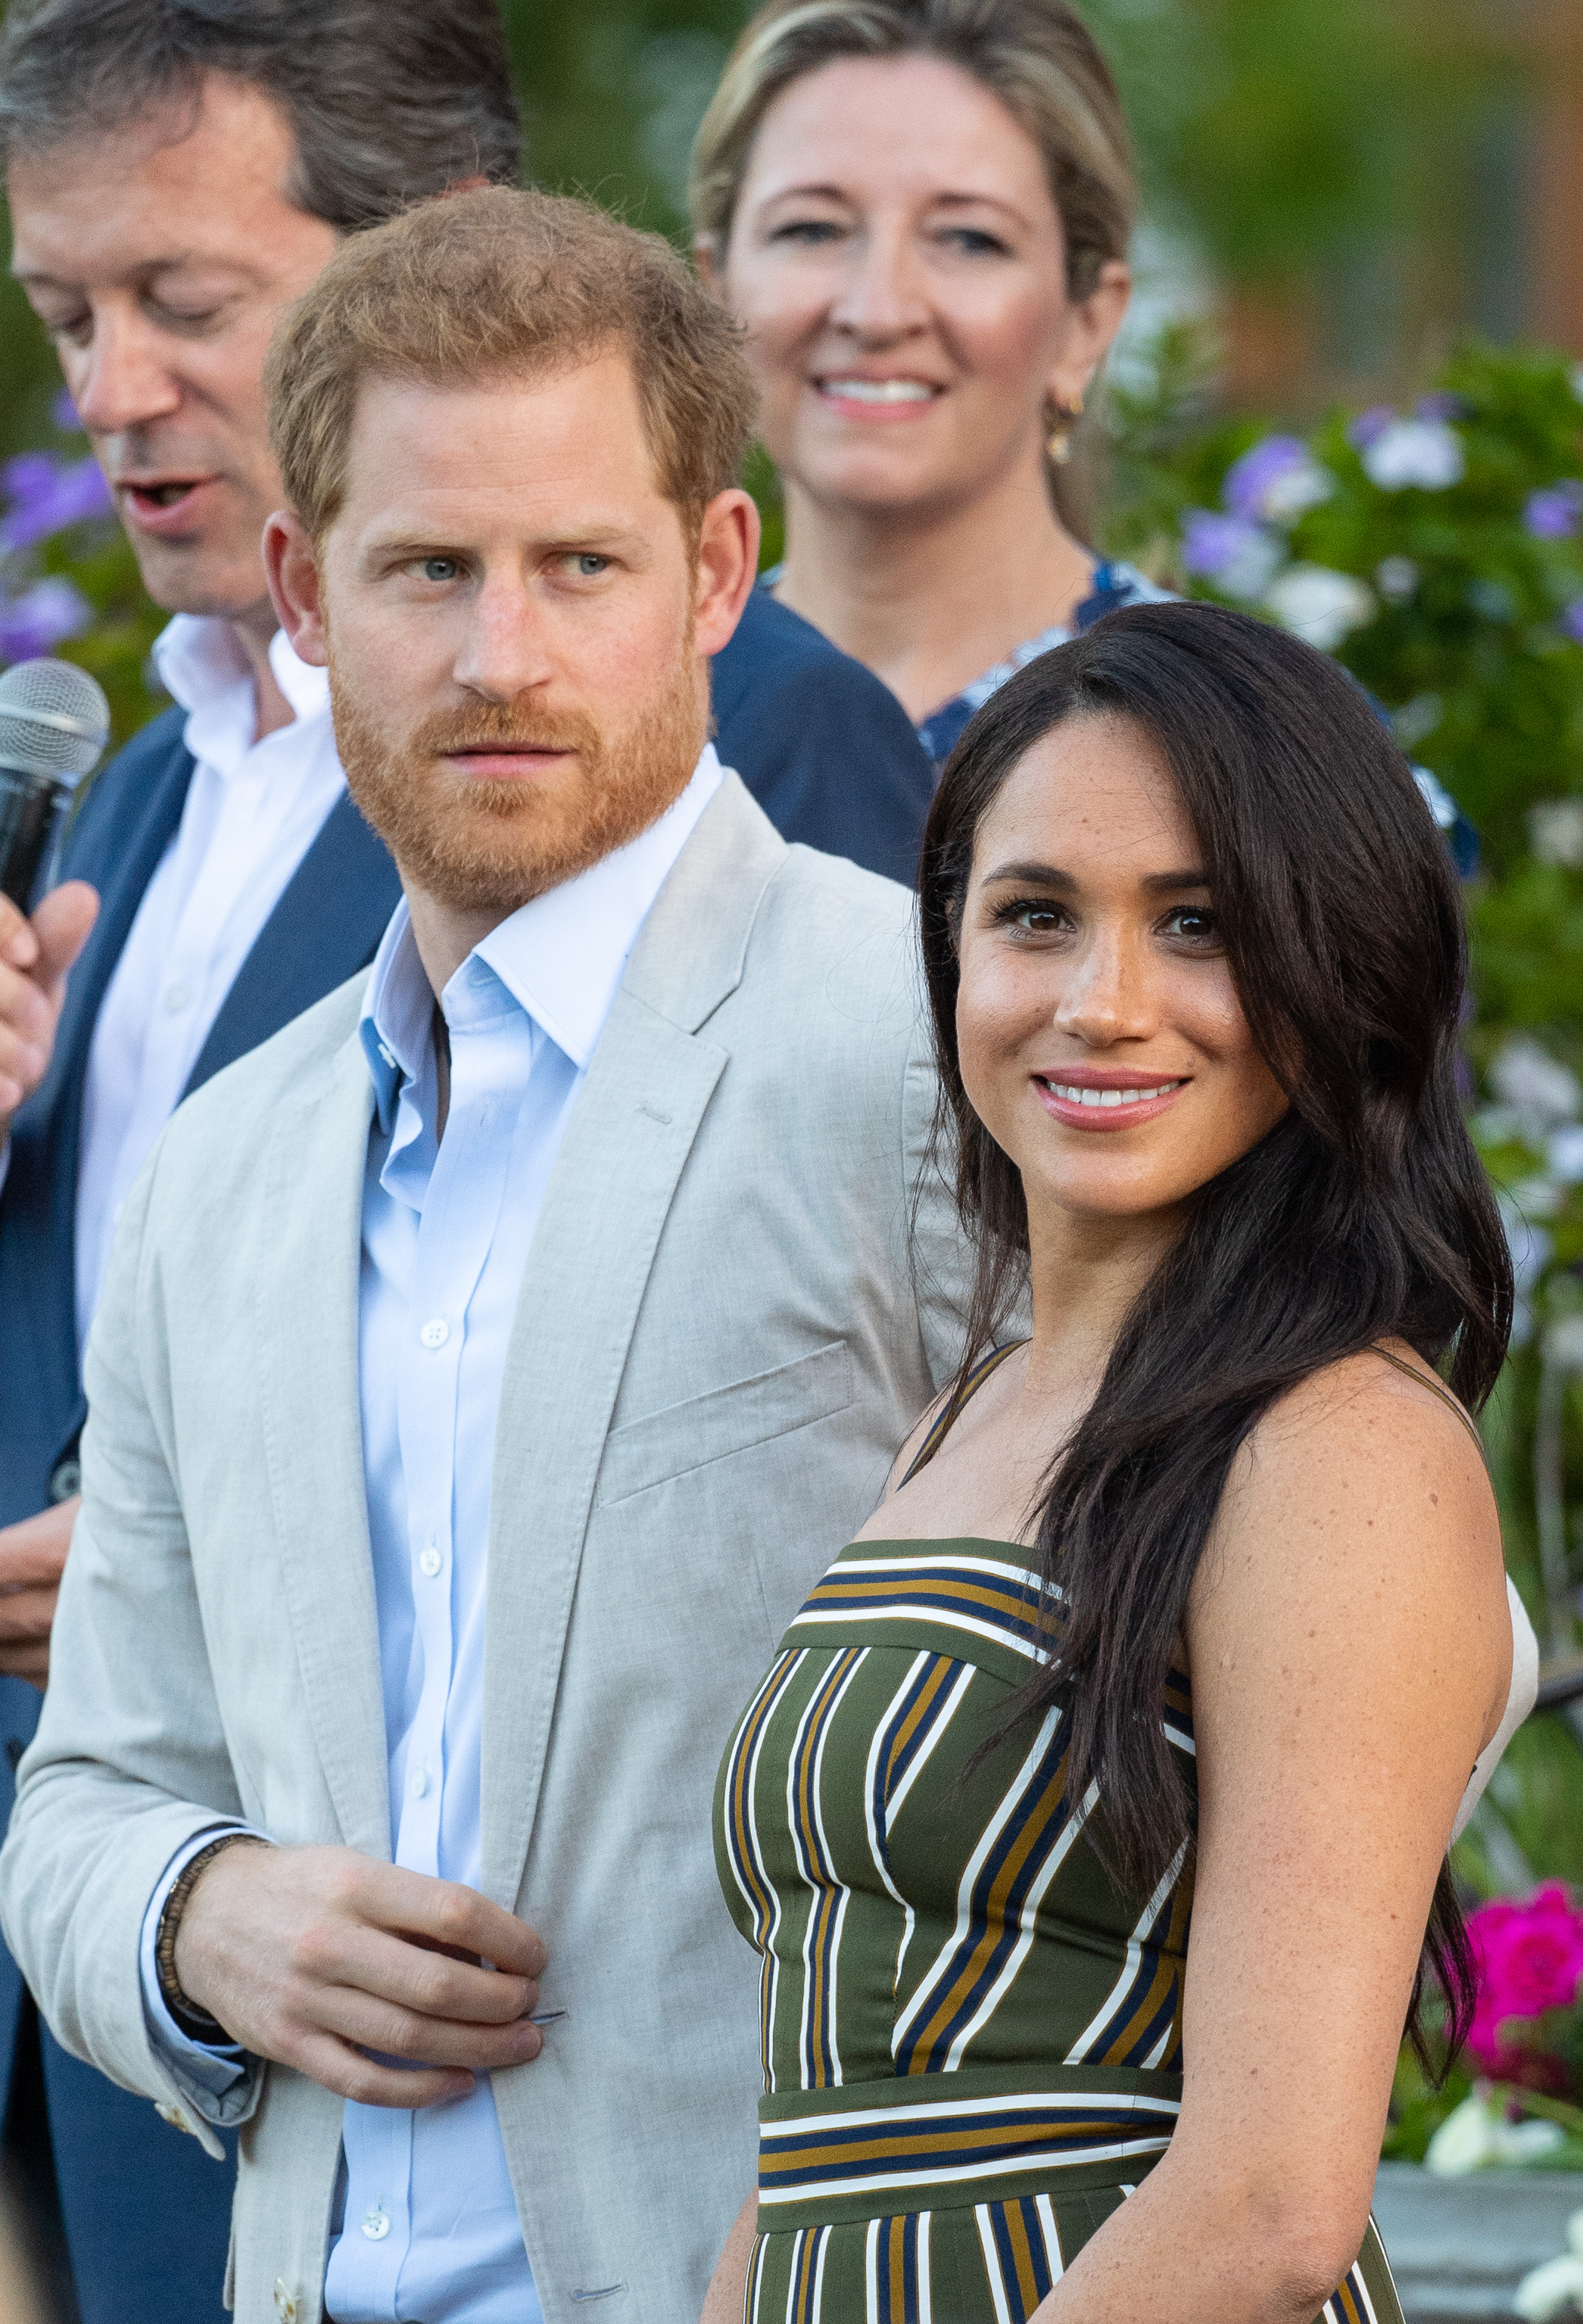 The Duke and Duchess of Sussex attend a reception for young people, community and civil society leaders at the Residence of the British High Commissioner in Cape Town, on day two of their tour of Africa.